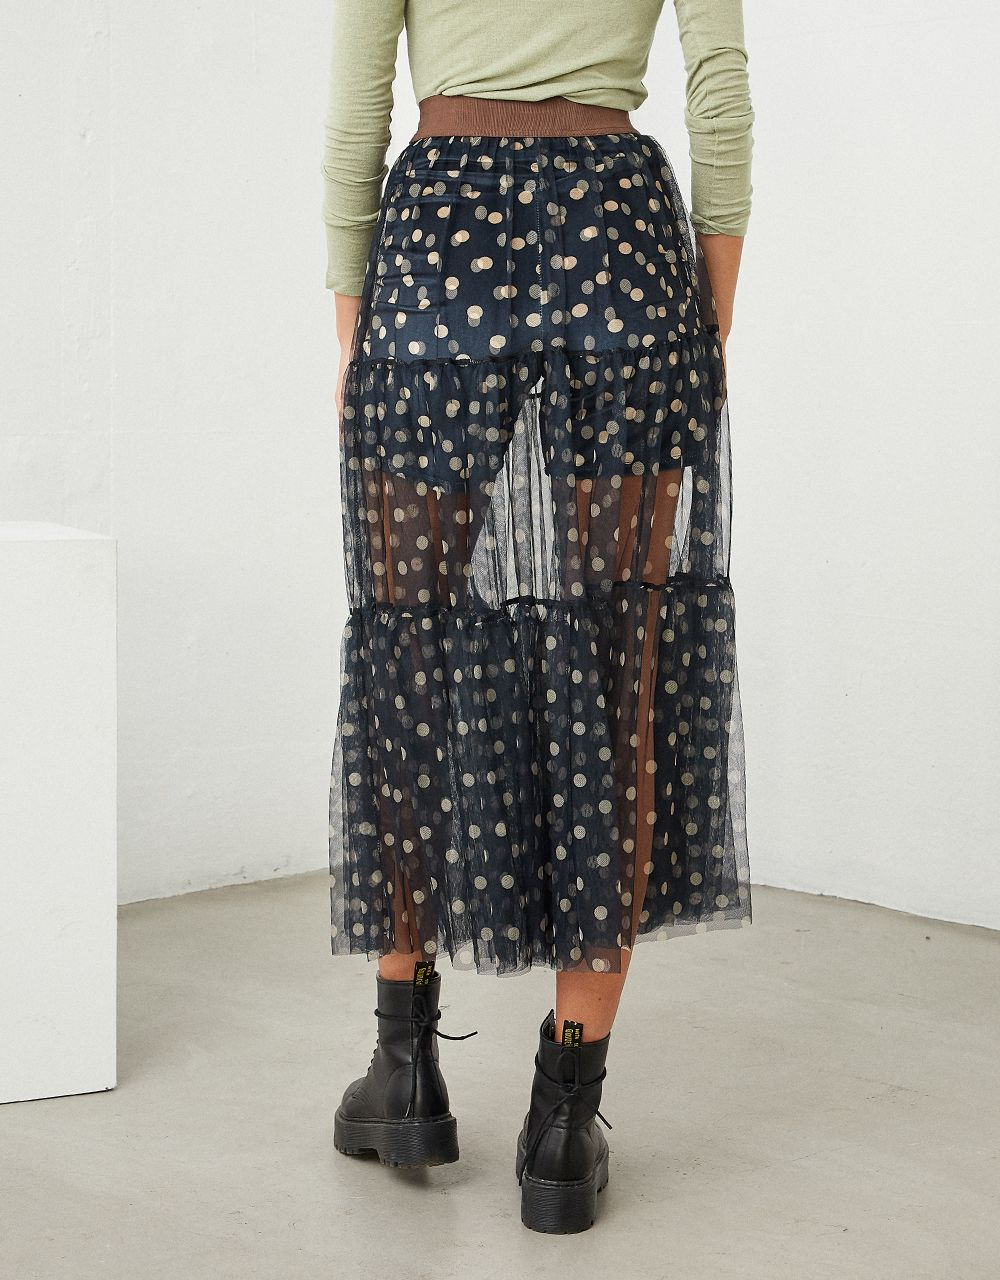 POLKA DOT SKIRT WITH TULLE